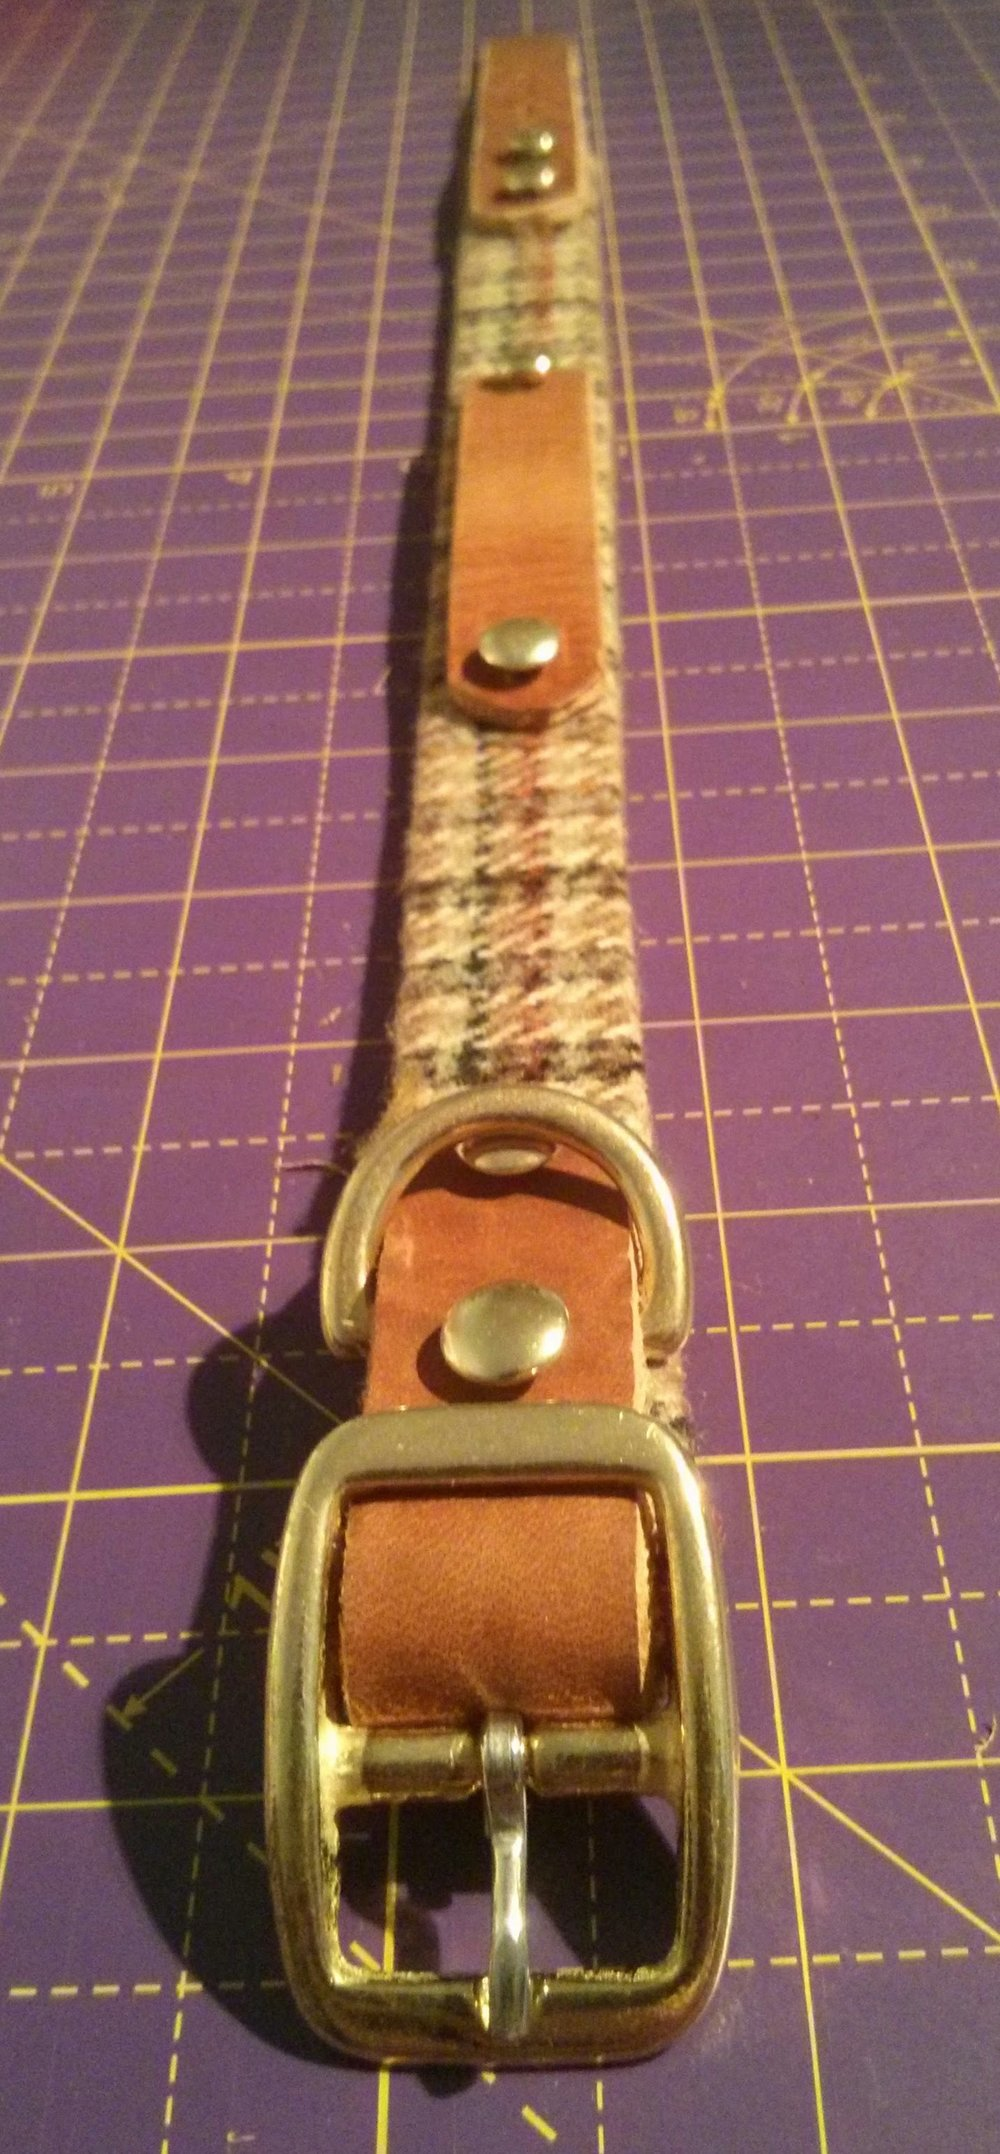 Tweed slim buckle.jpg